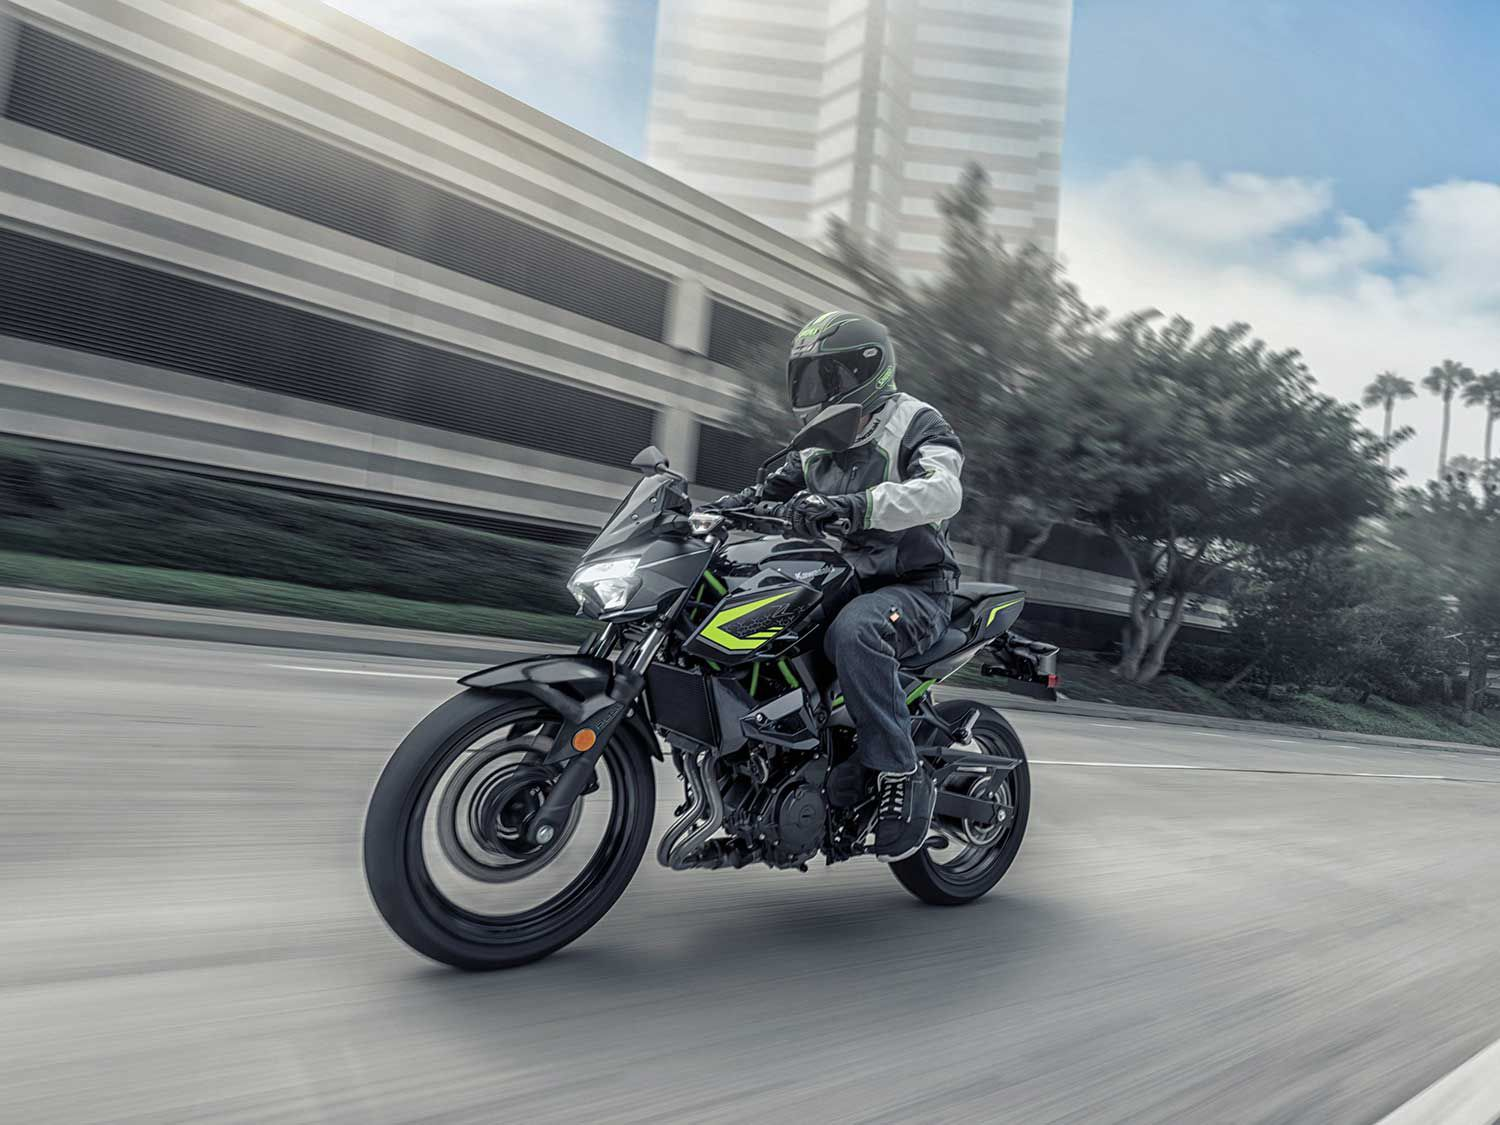 New riders and experienced riders alike will find joy on the Kawasaki Z400 ABS.